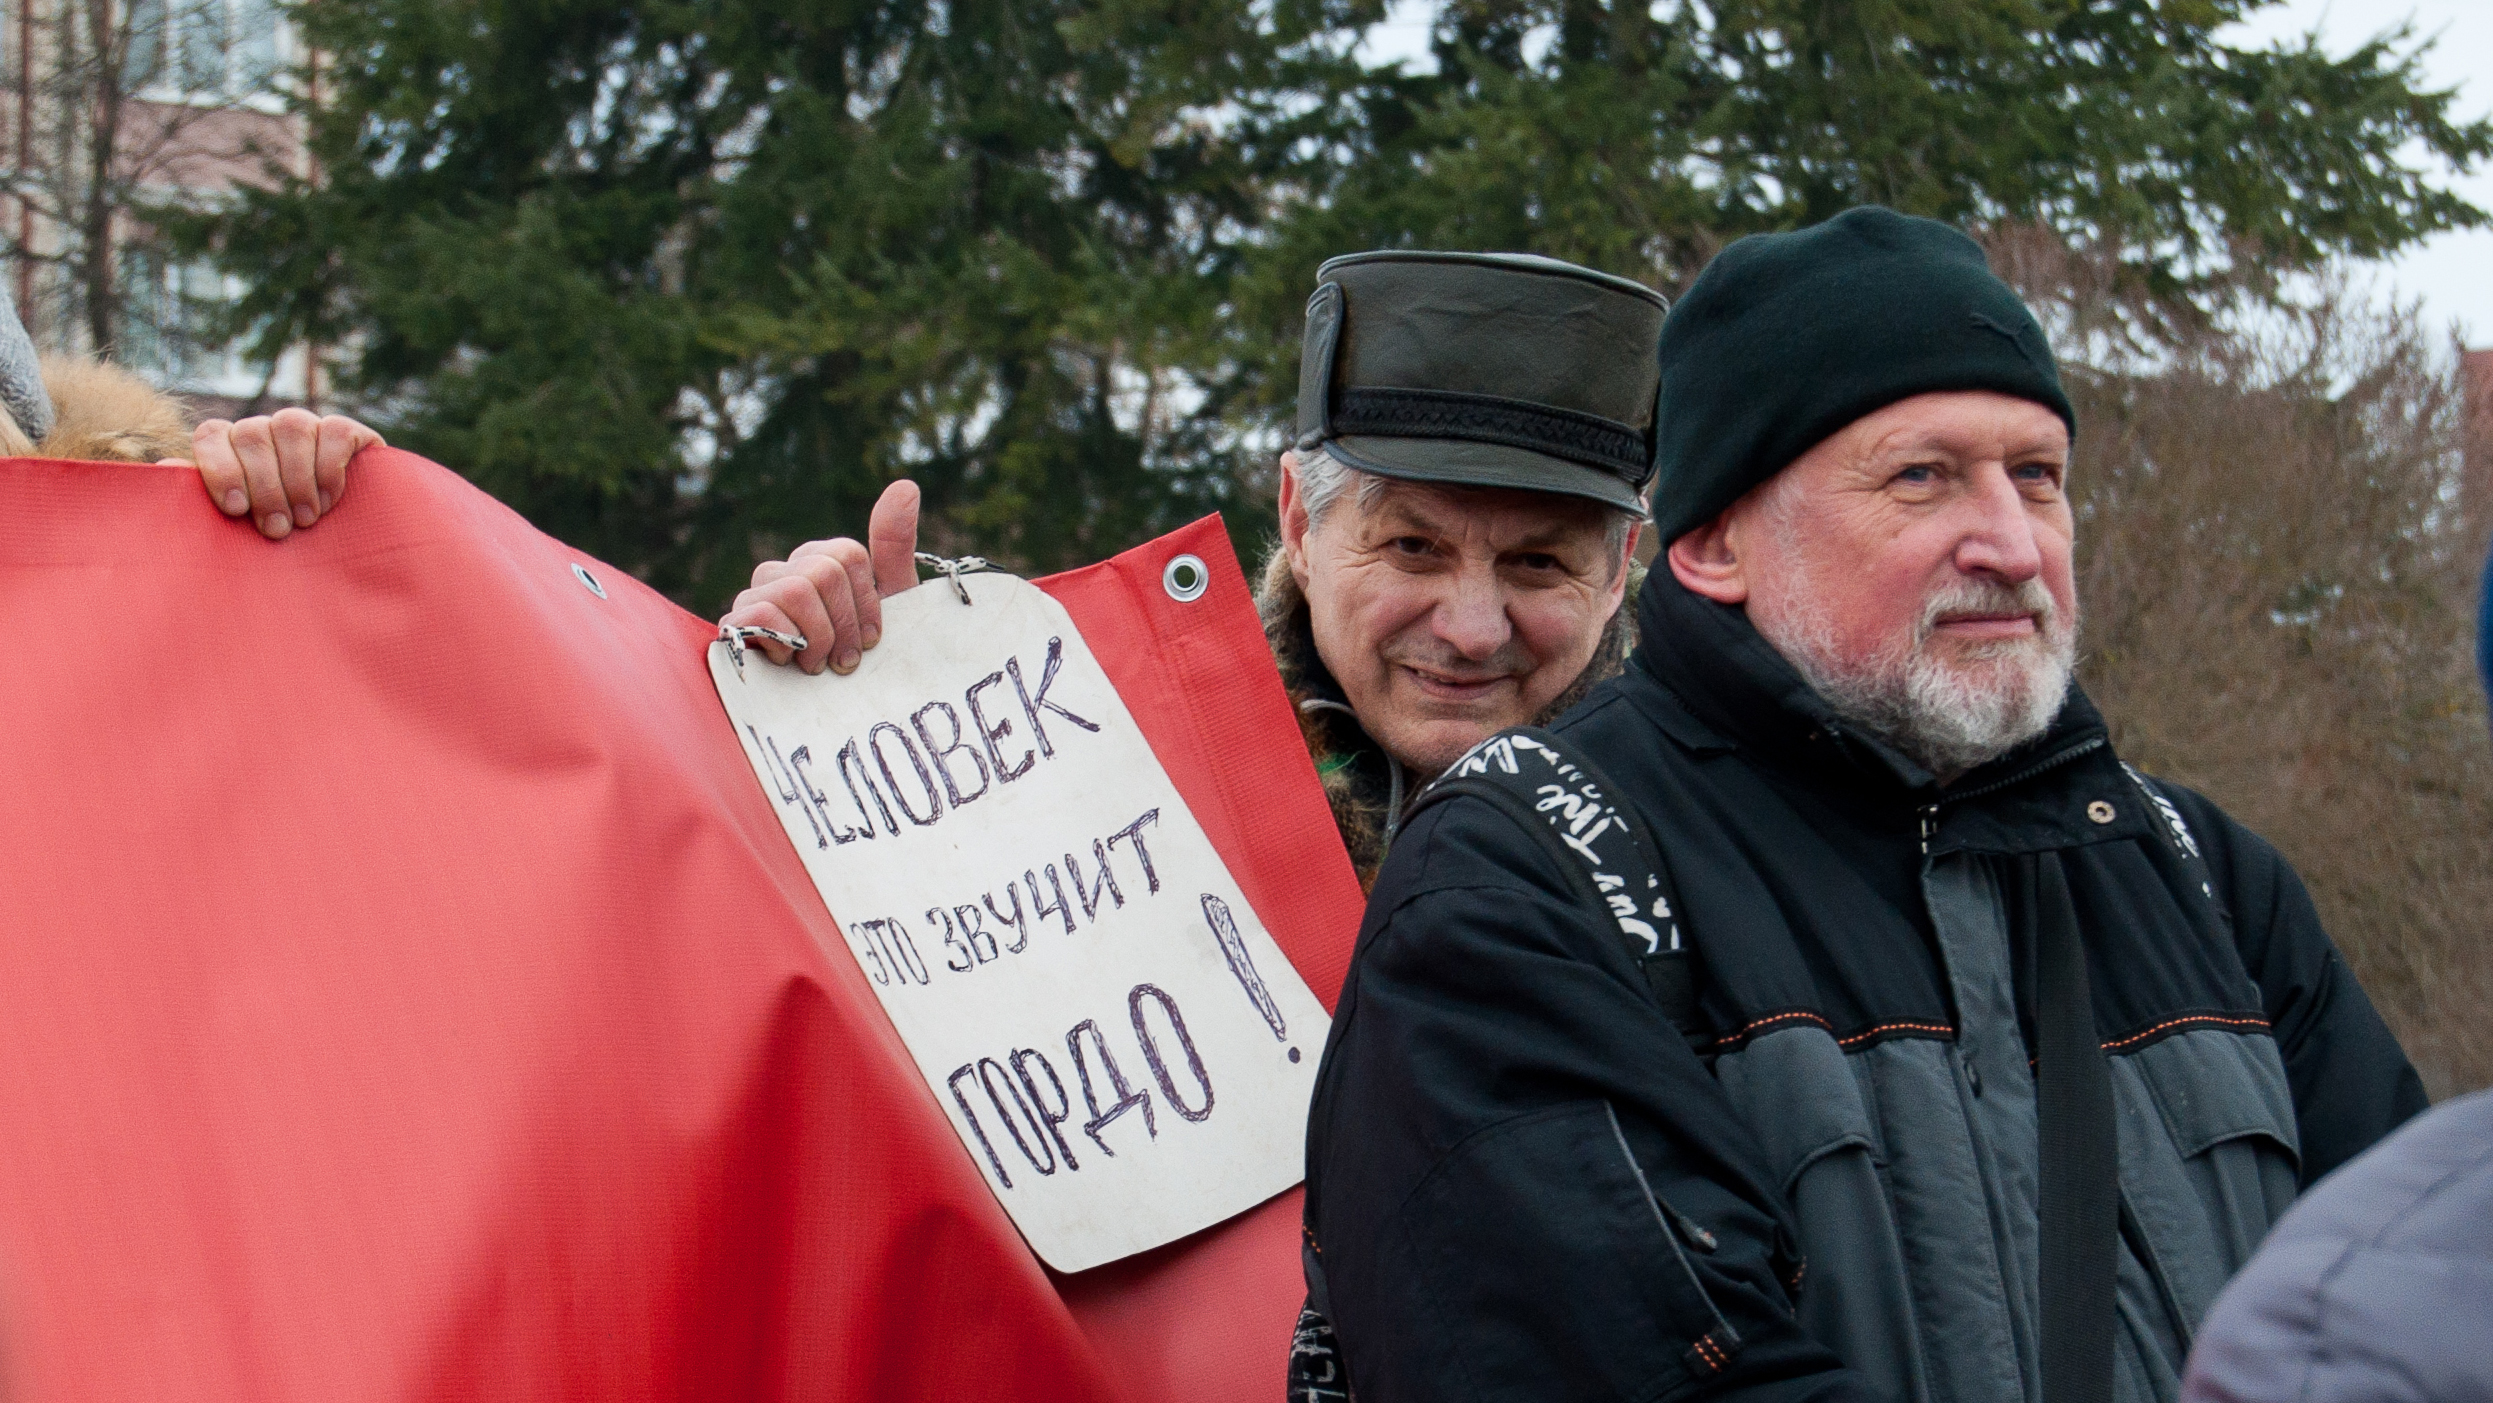 Rally held in Pskov on 10 February in support of local journalist Svetlana Prokopyeva and freedom of speech in Russia. Copyright: Human Rights House Voronezh